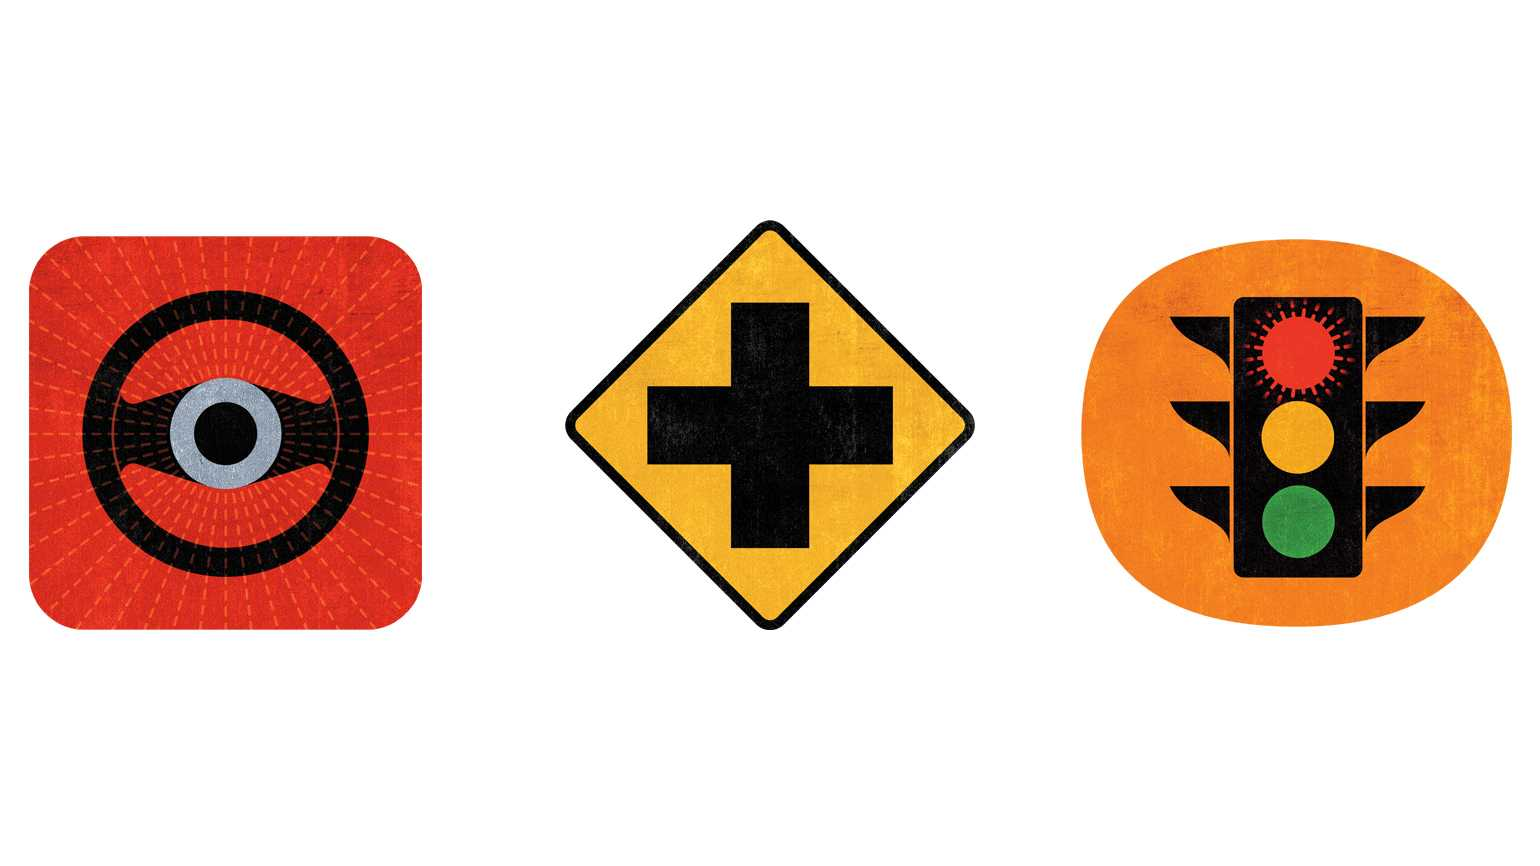 A trio of road signs; Illustration By Jeff Koegel